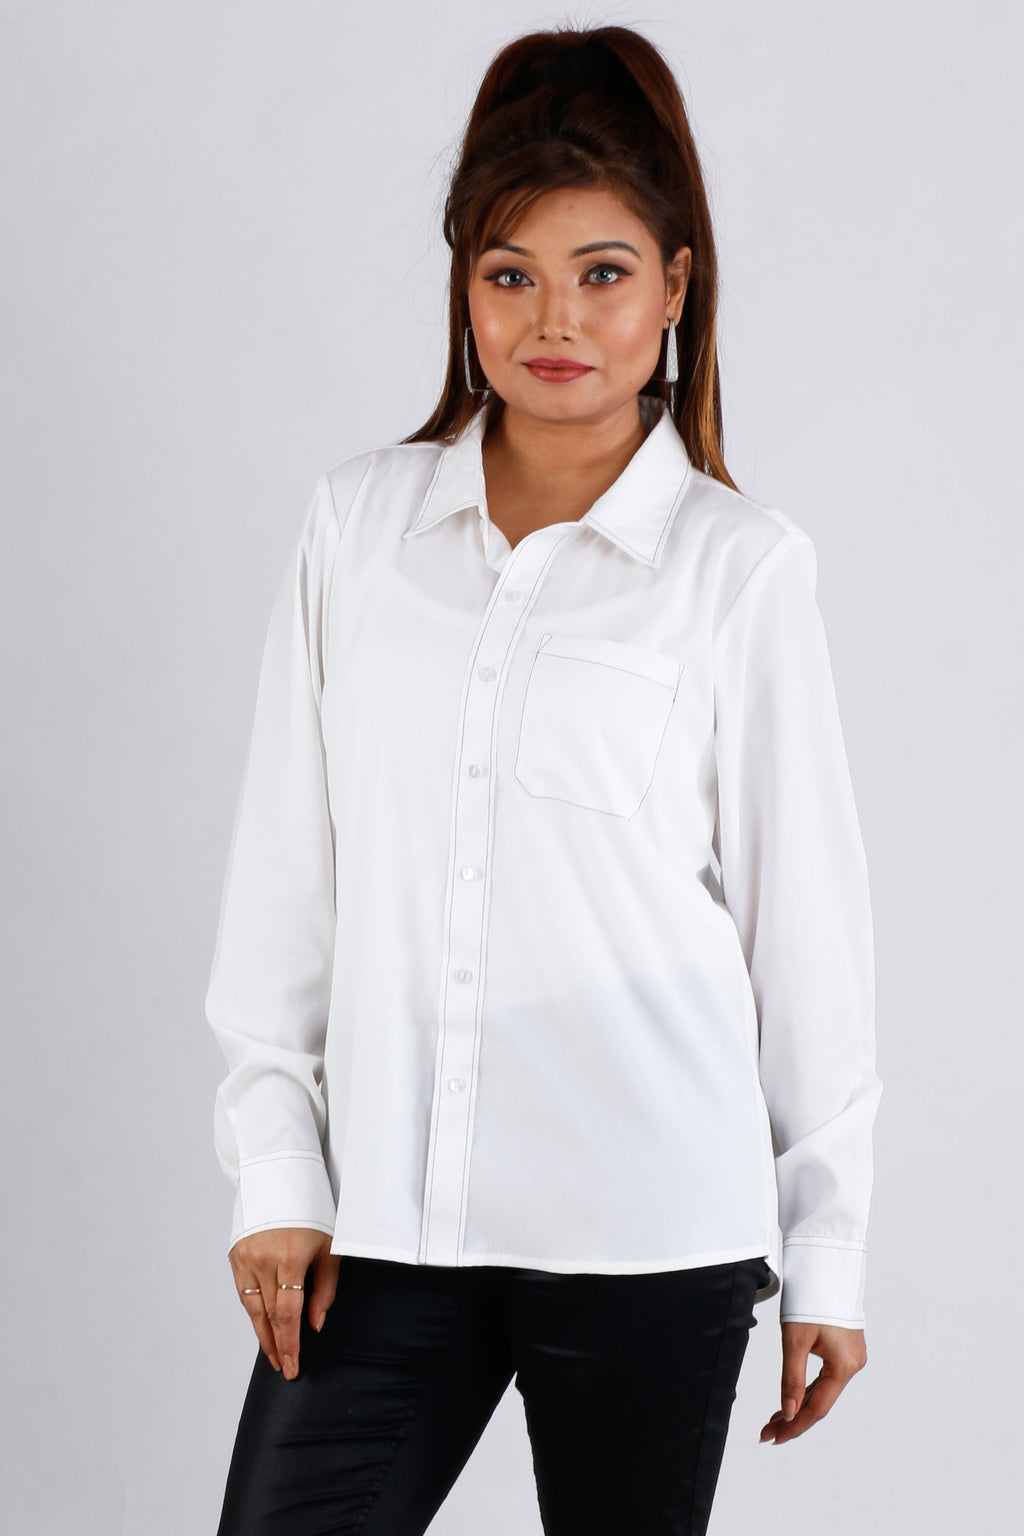 Womens Formal White Shirt - K1583W